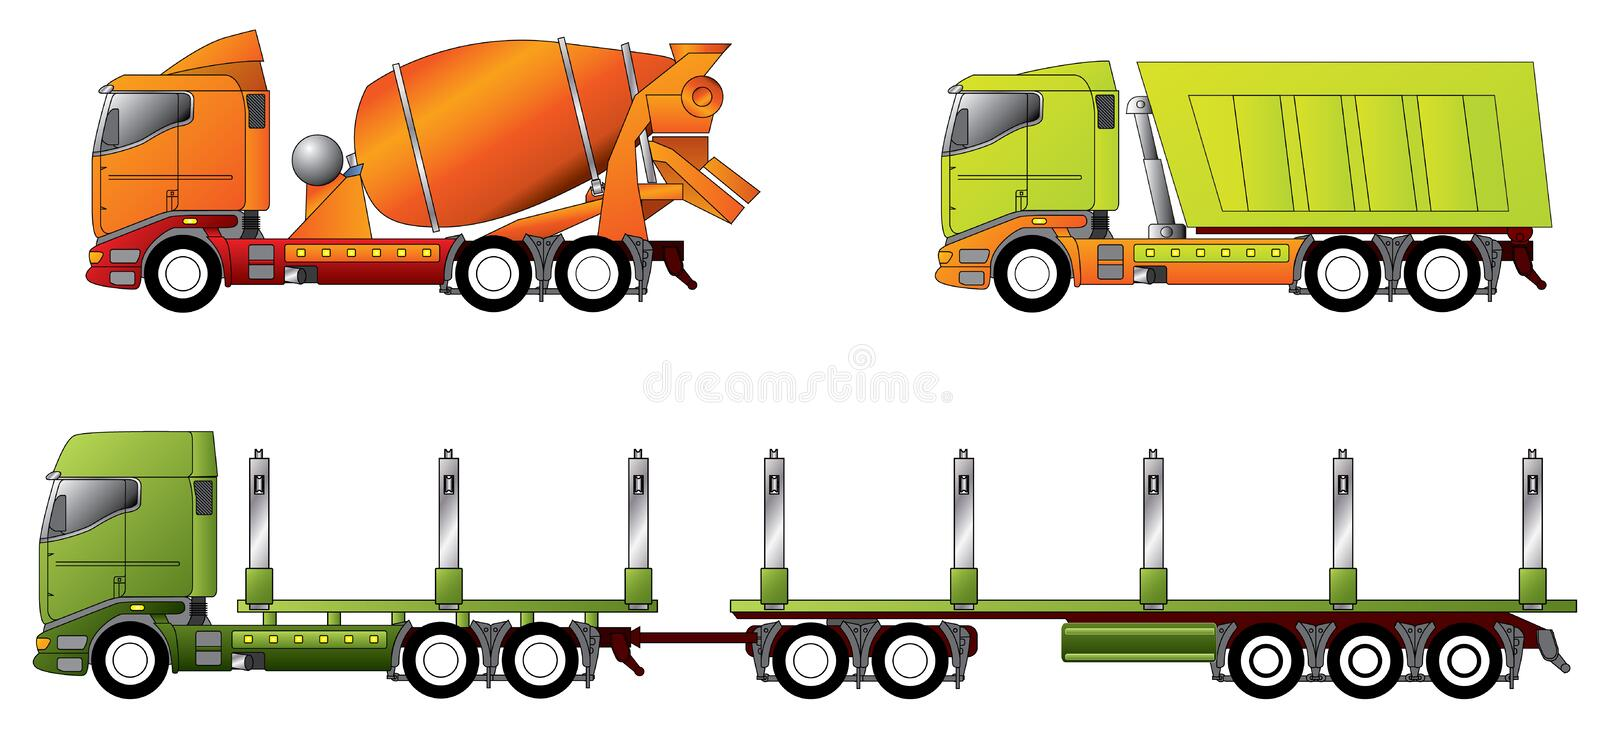 Construction and timber truck. Designs in different colors stock illustration